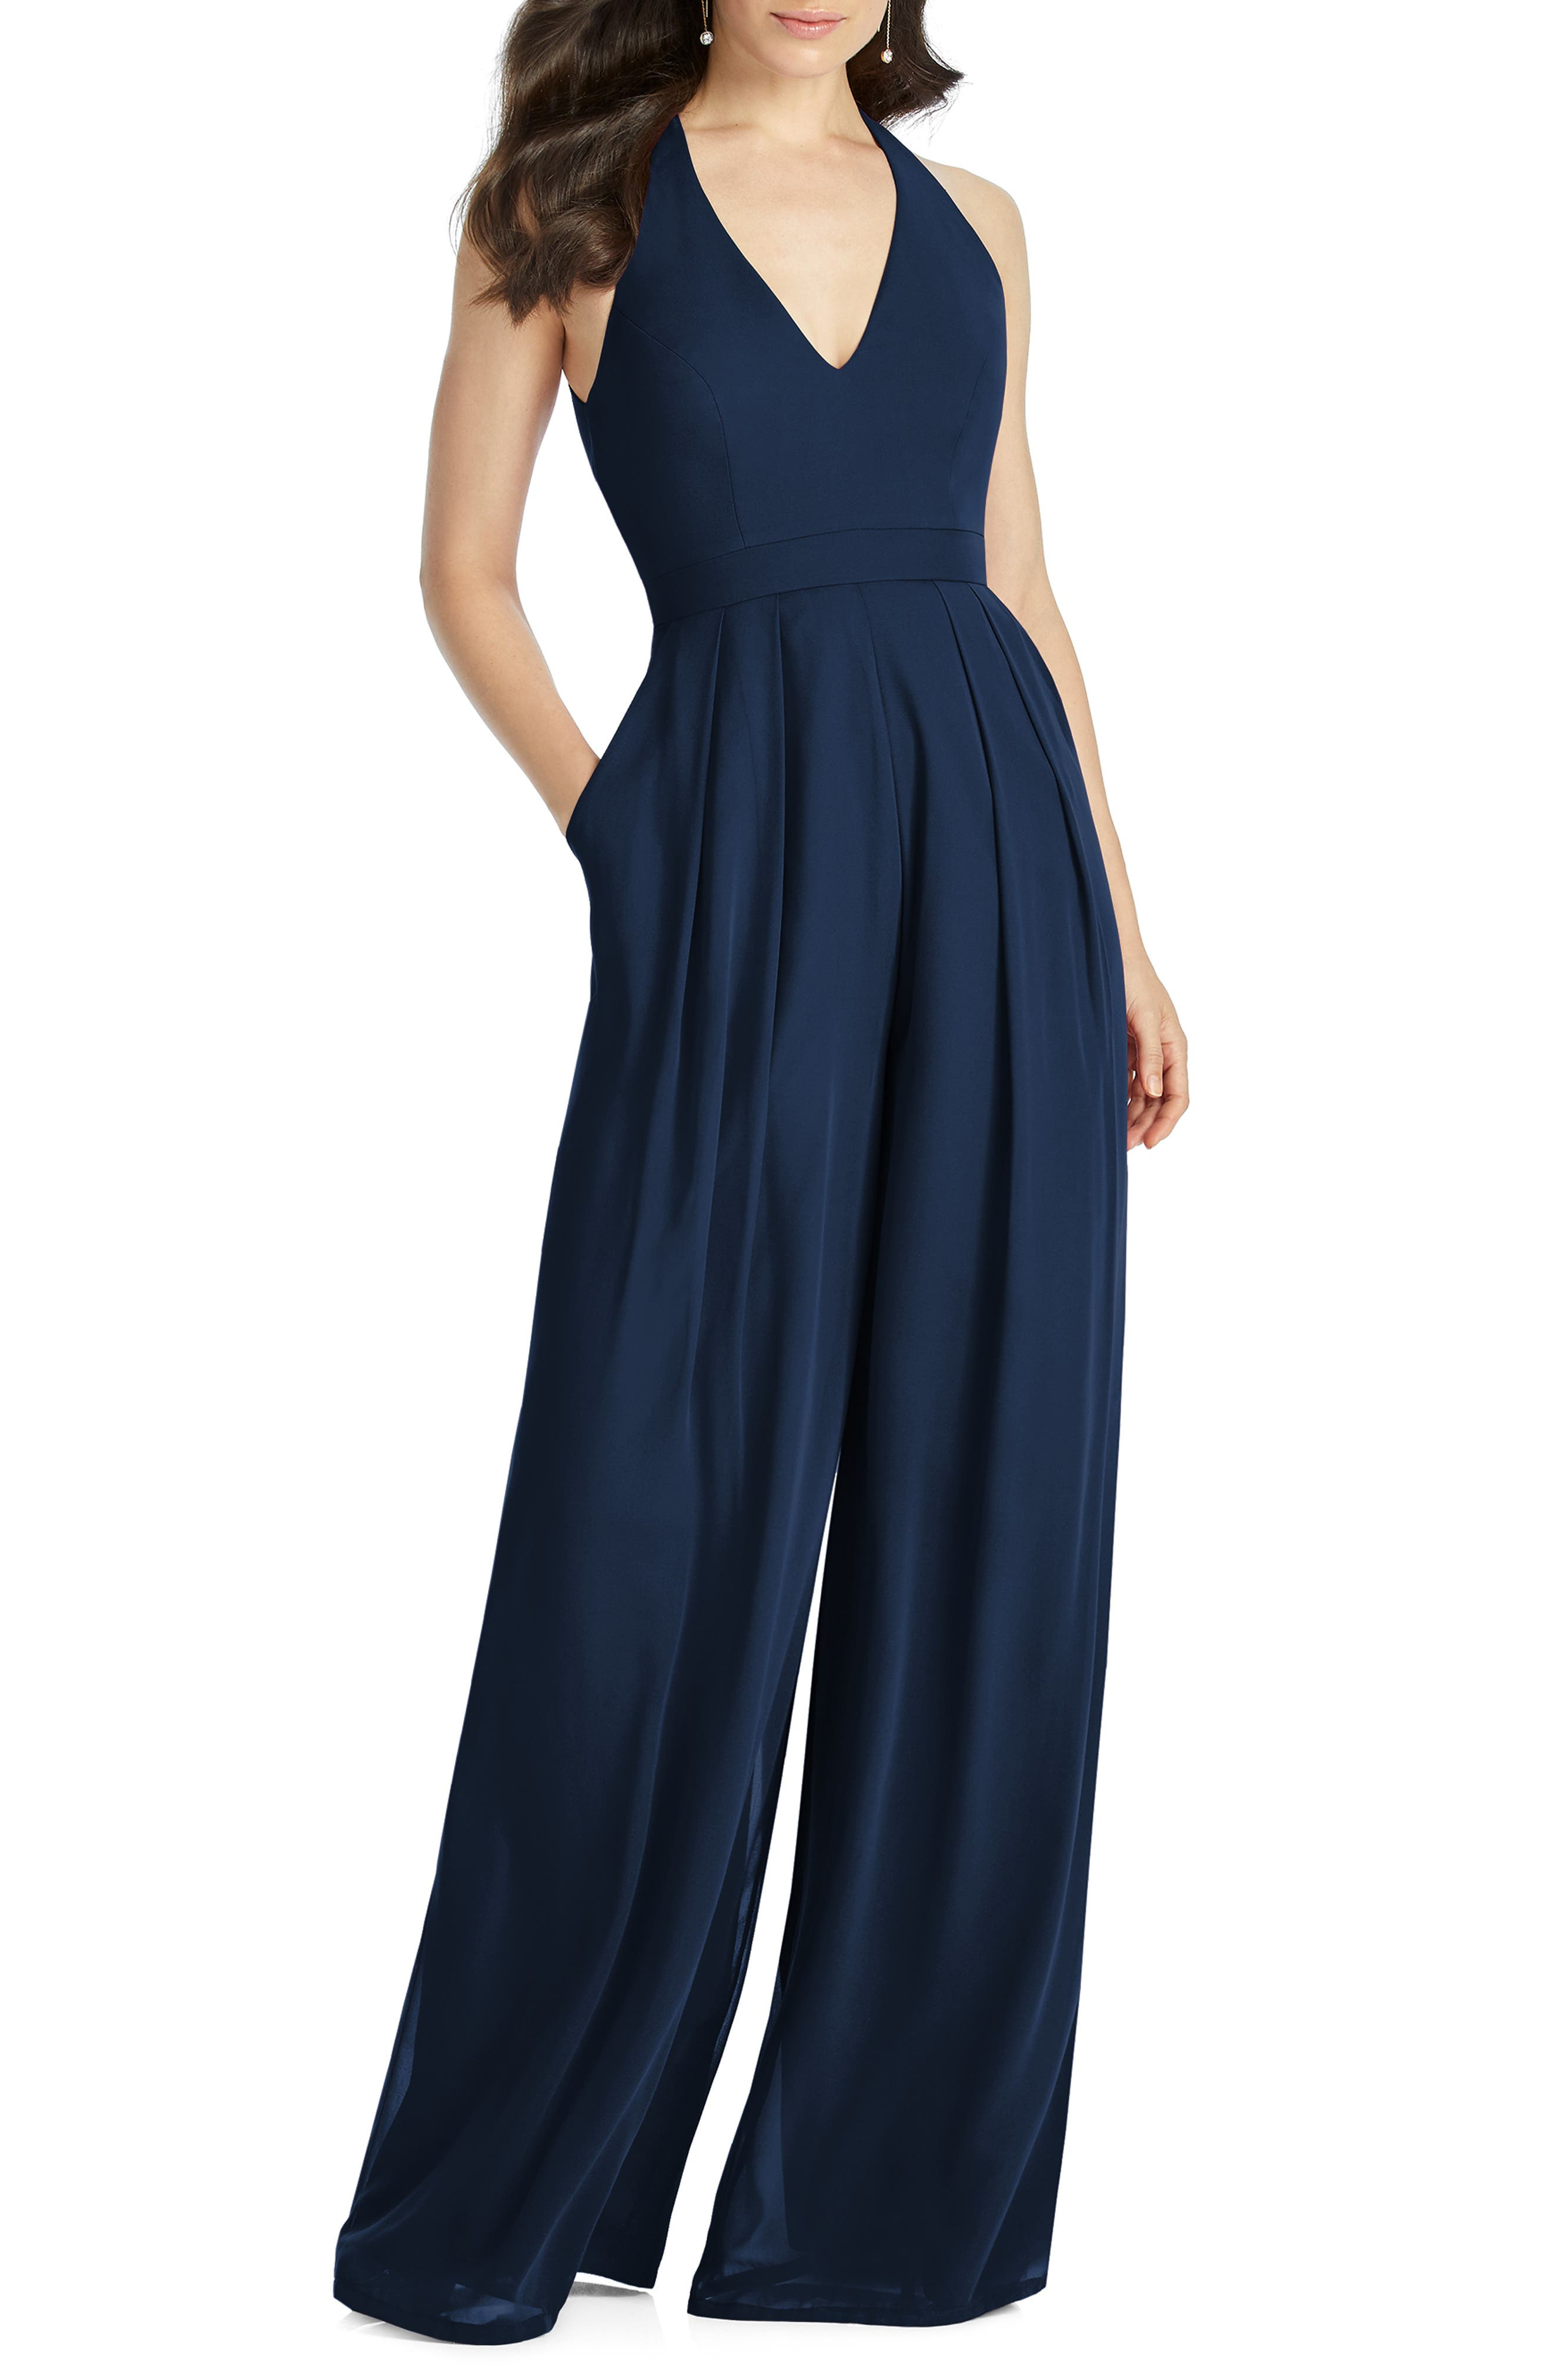 DESSY COLLECTION, Arielle V-Neck Lux Chiffon Jumpsuit, Main thumbnail 1, color, MIDNIGHT